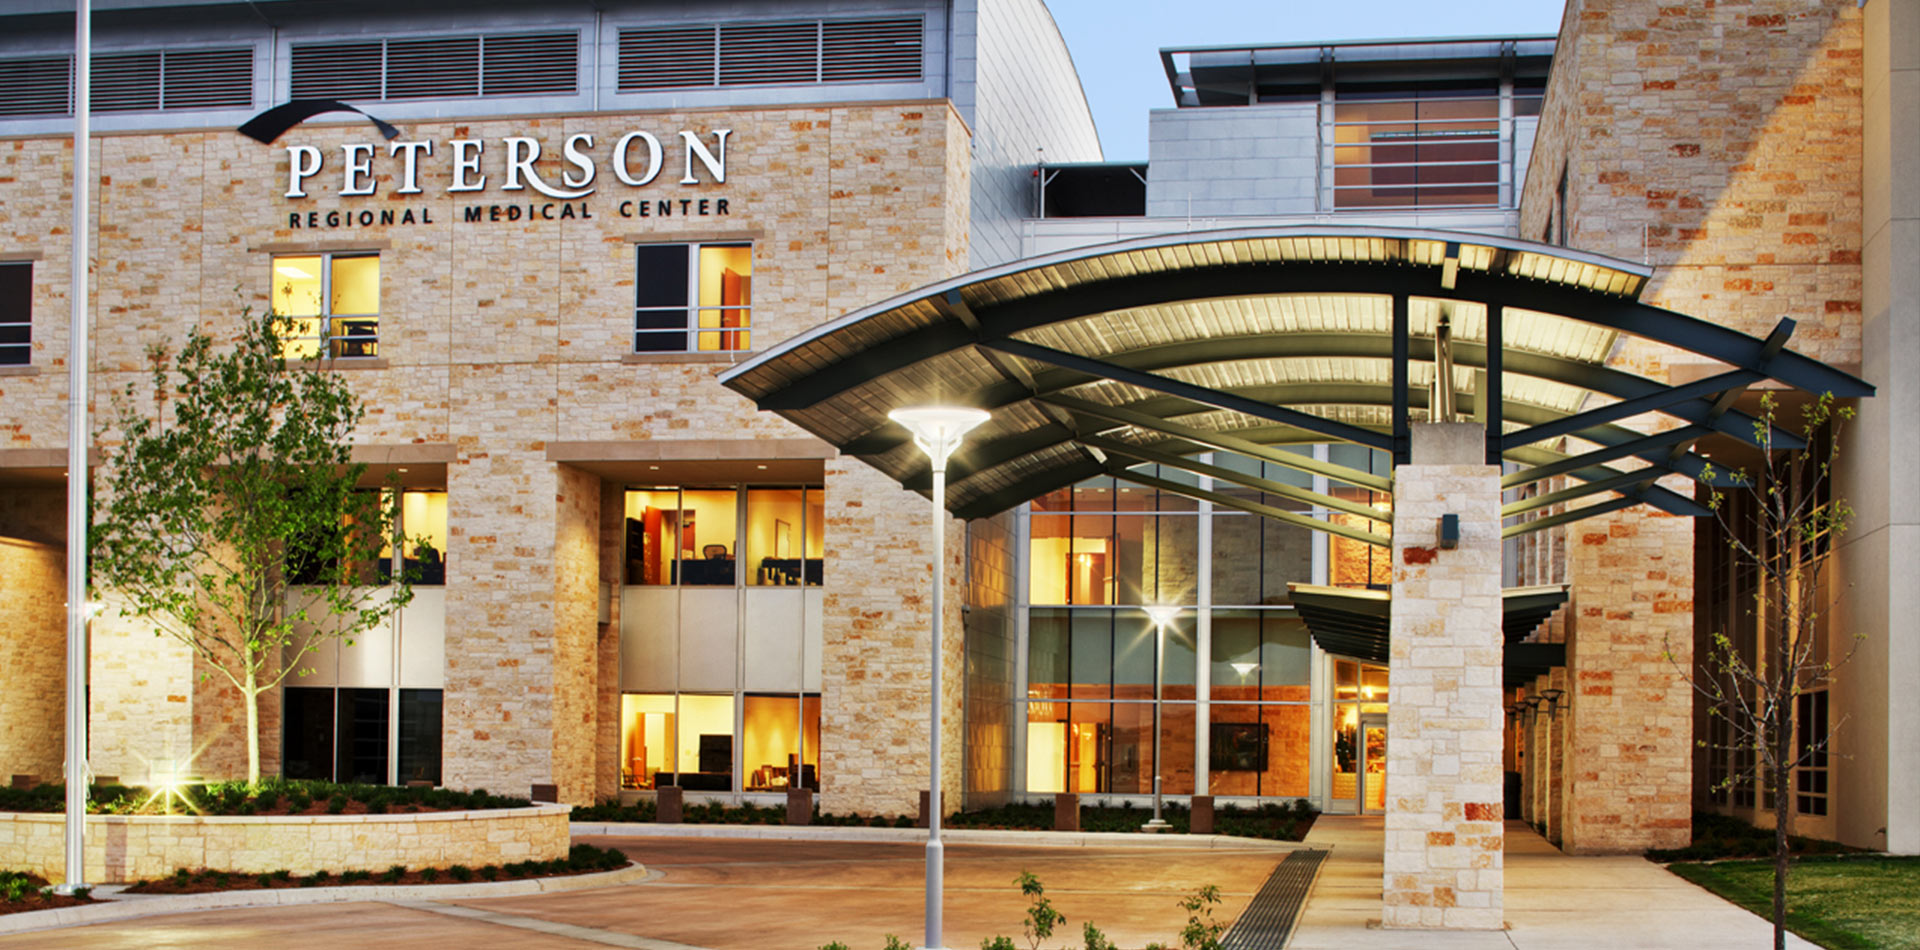 peterson_regional_medical_center